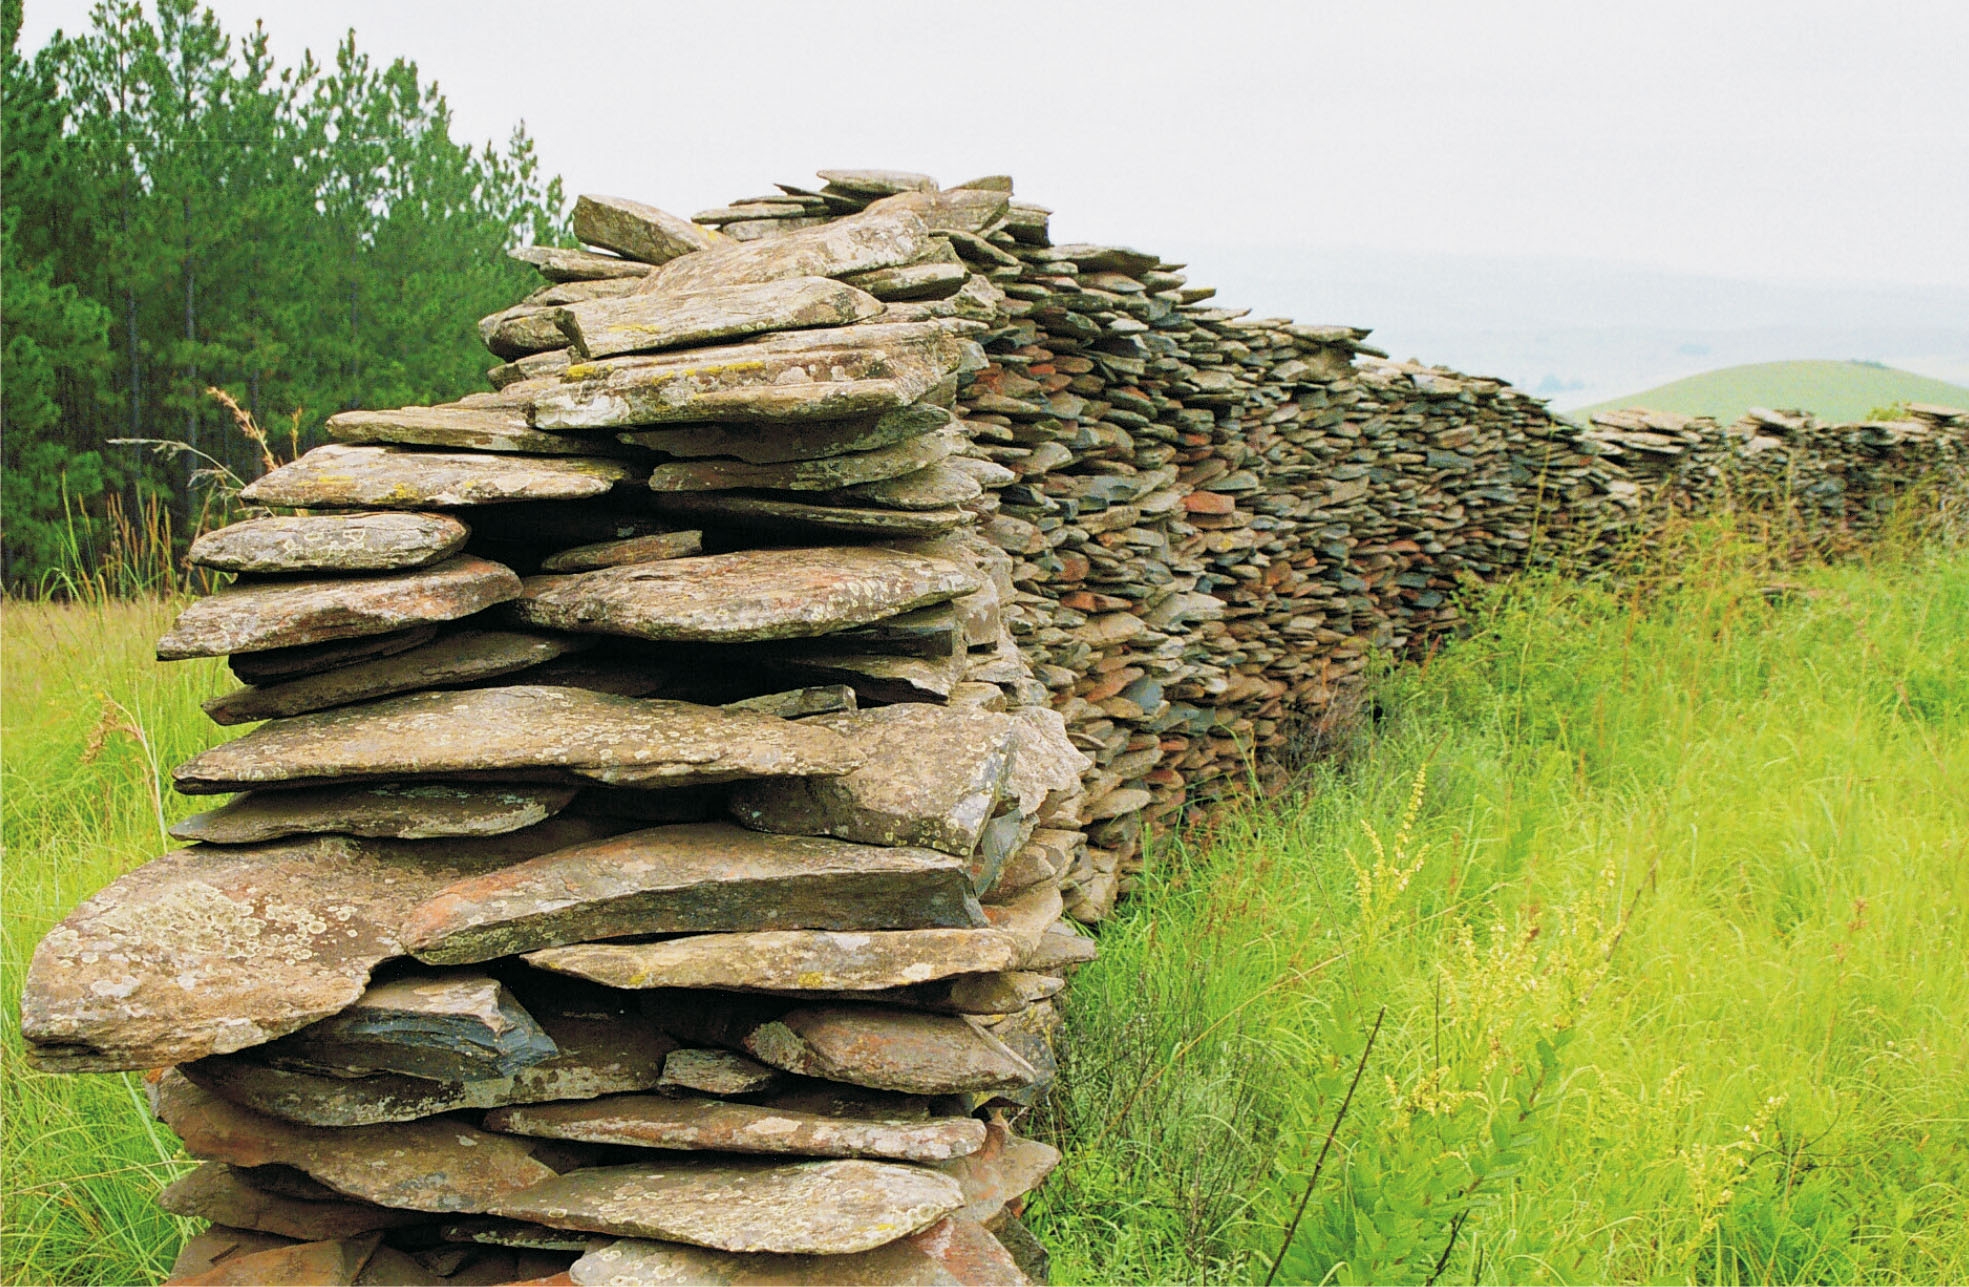 Stonewalled cities of Bakone